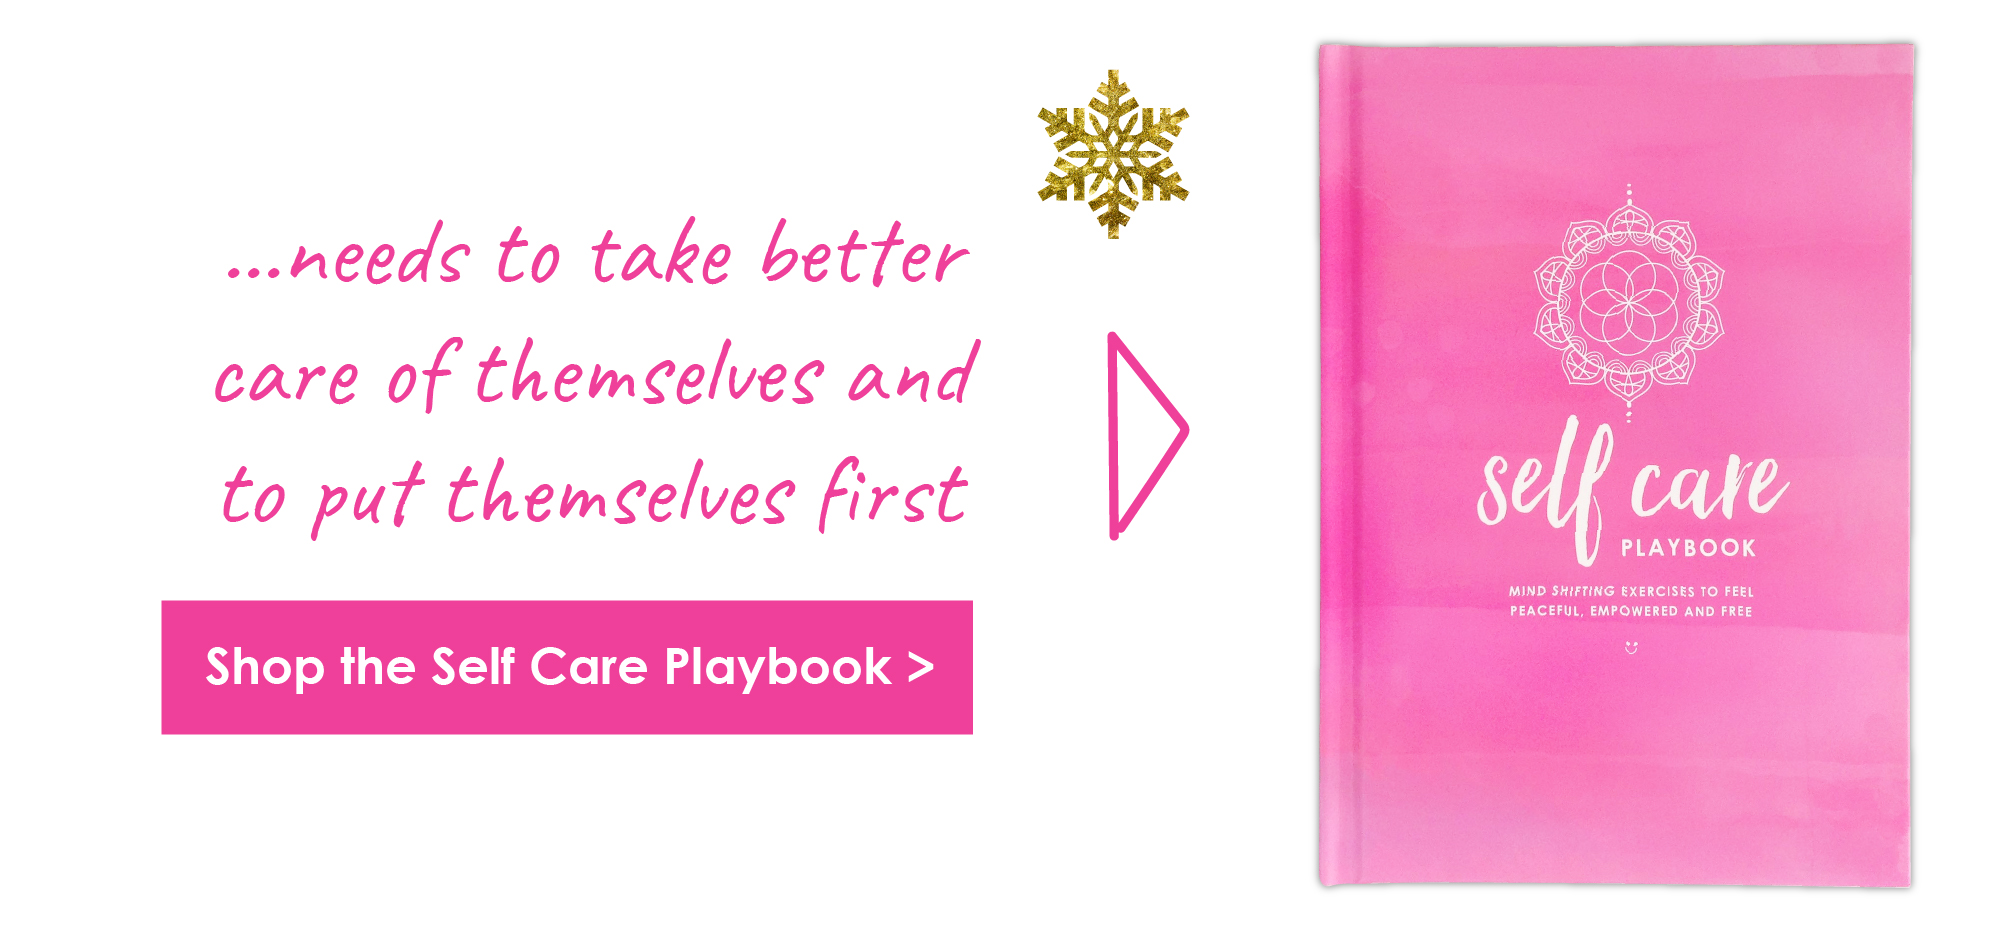 Shop the Self Care Playbook